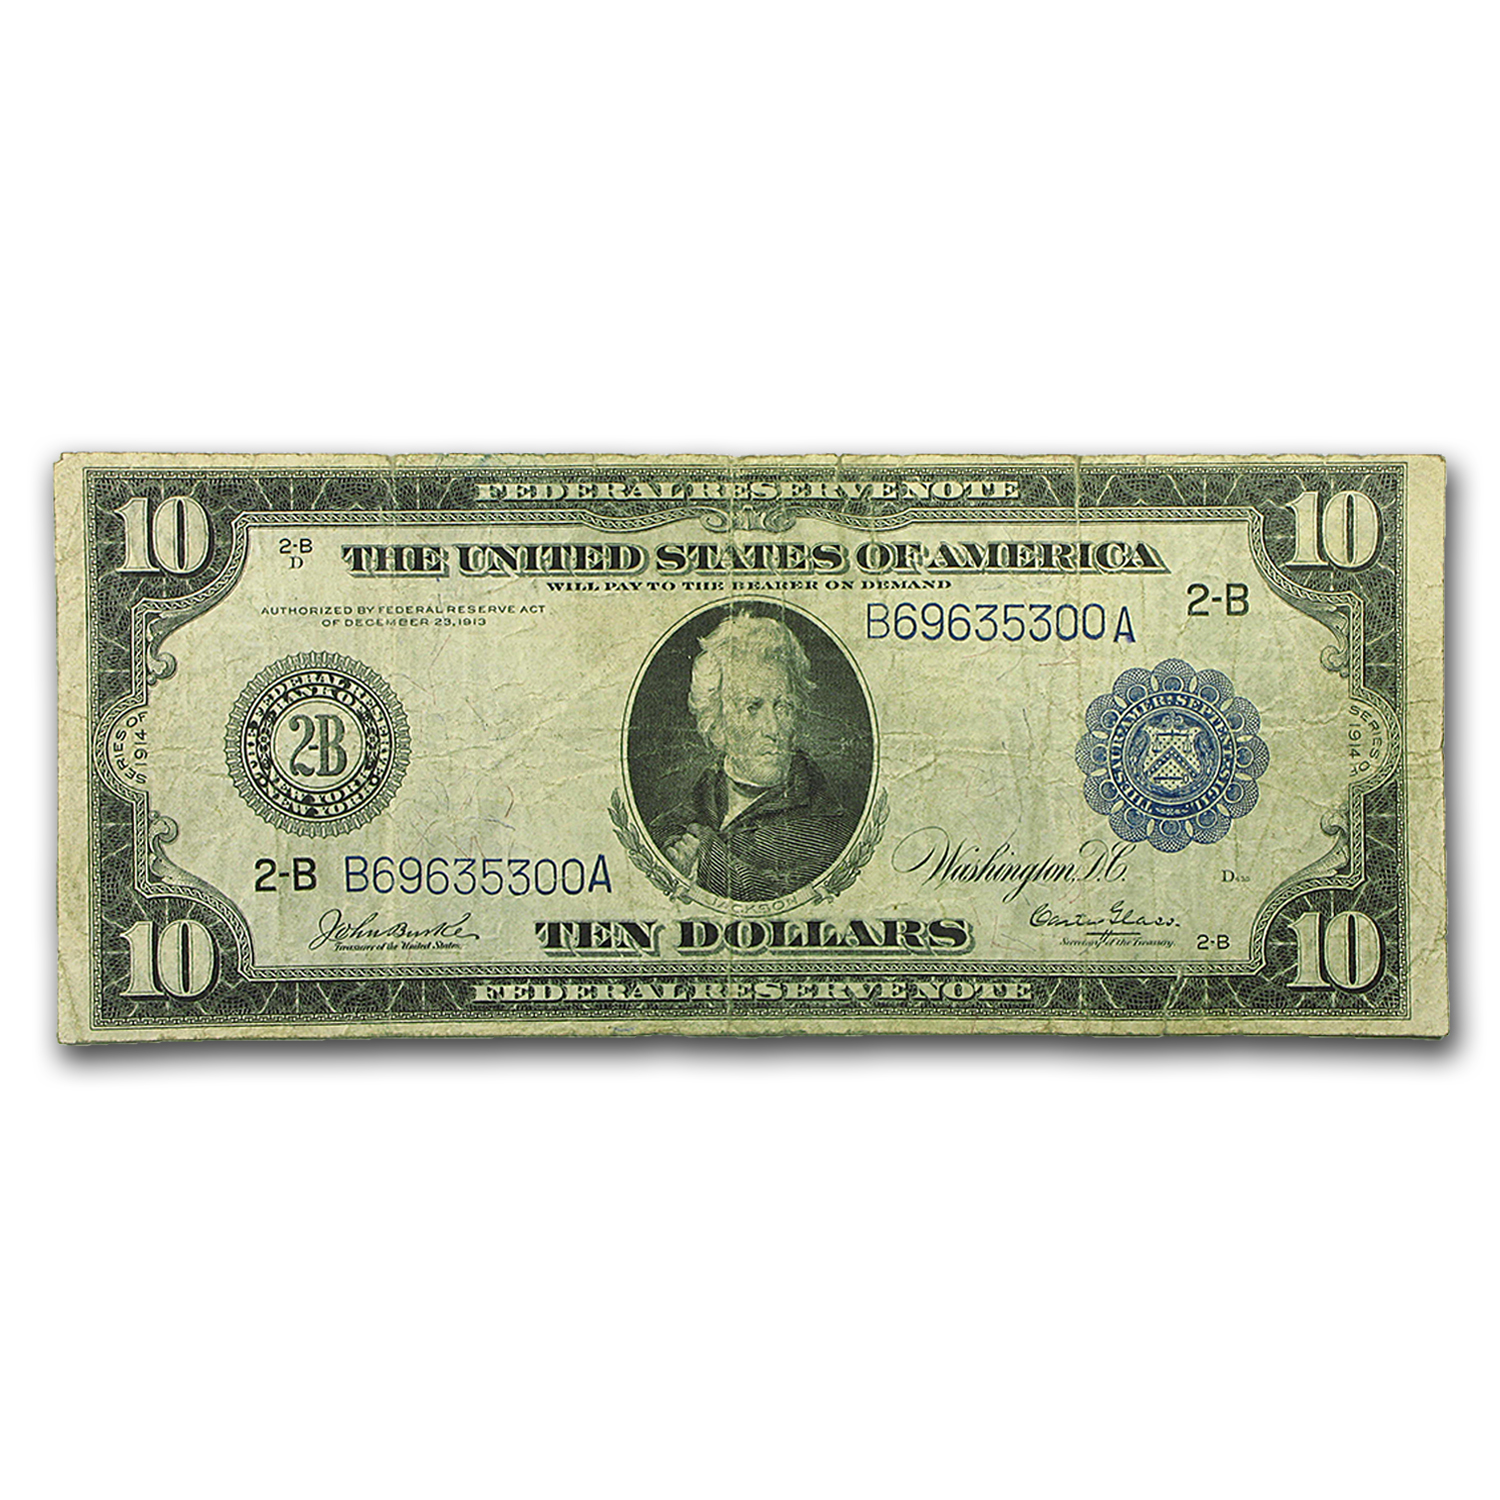 1914 (B-New York) $10 FRN Fine